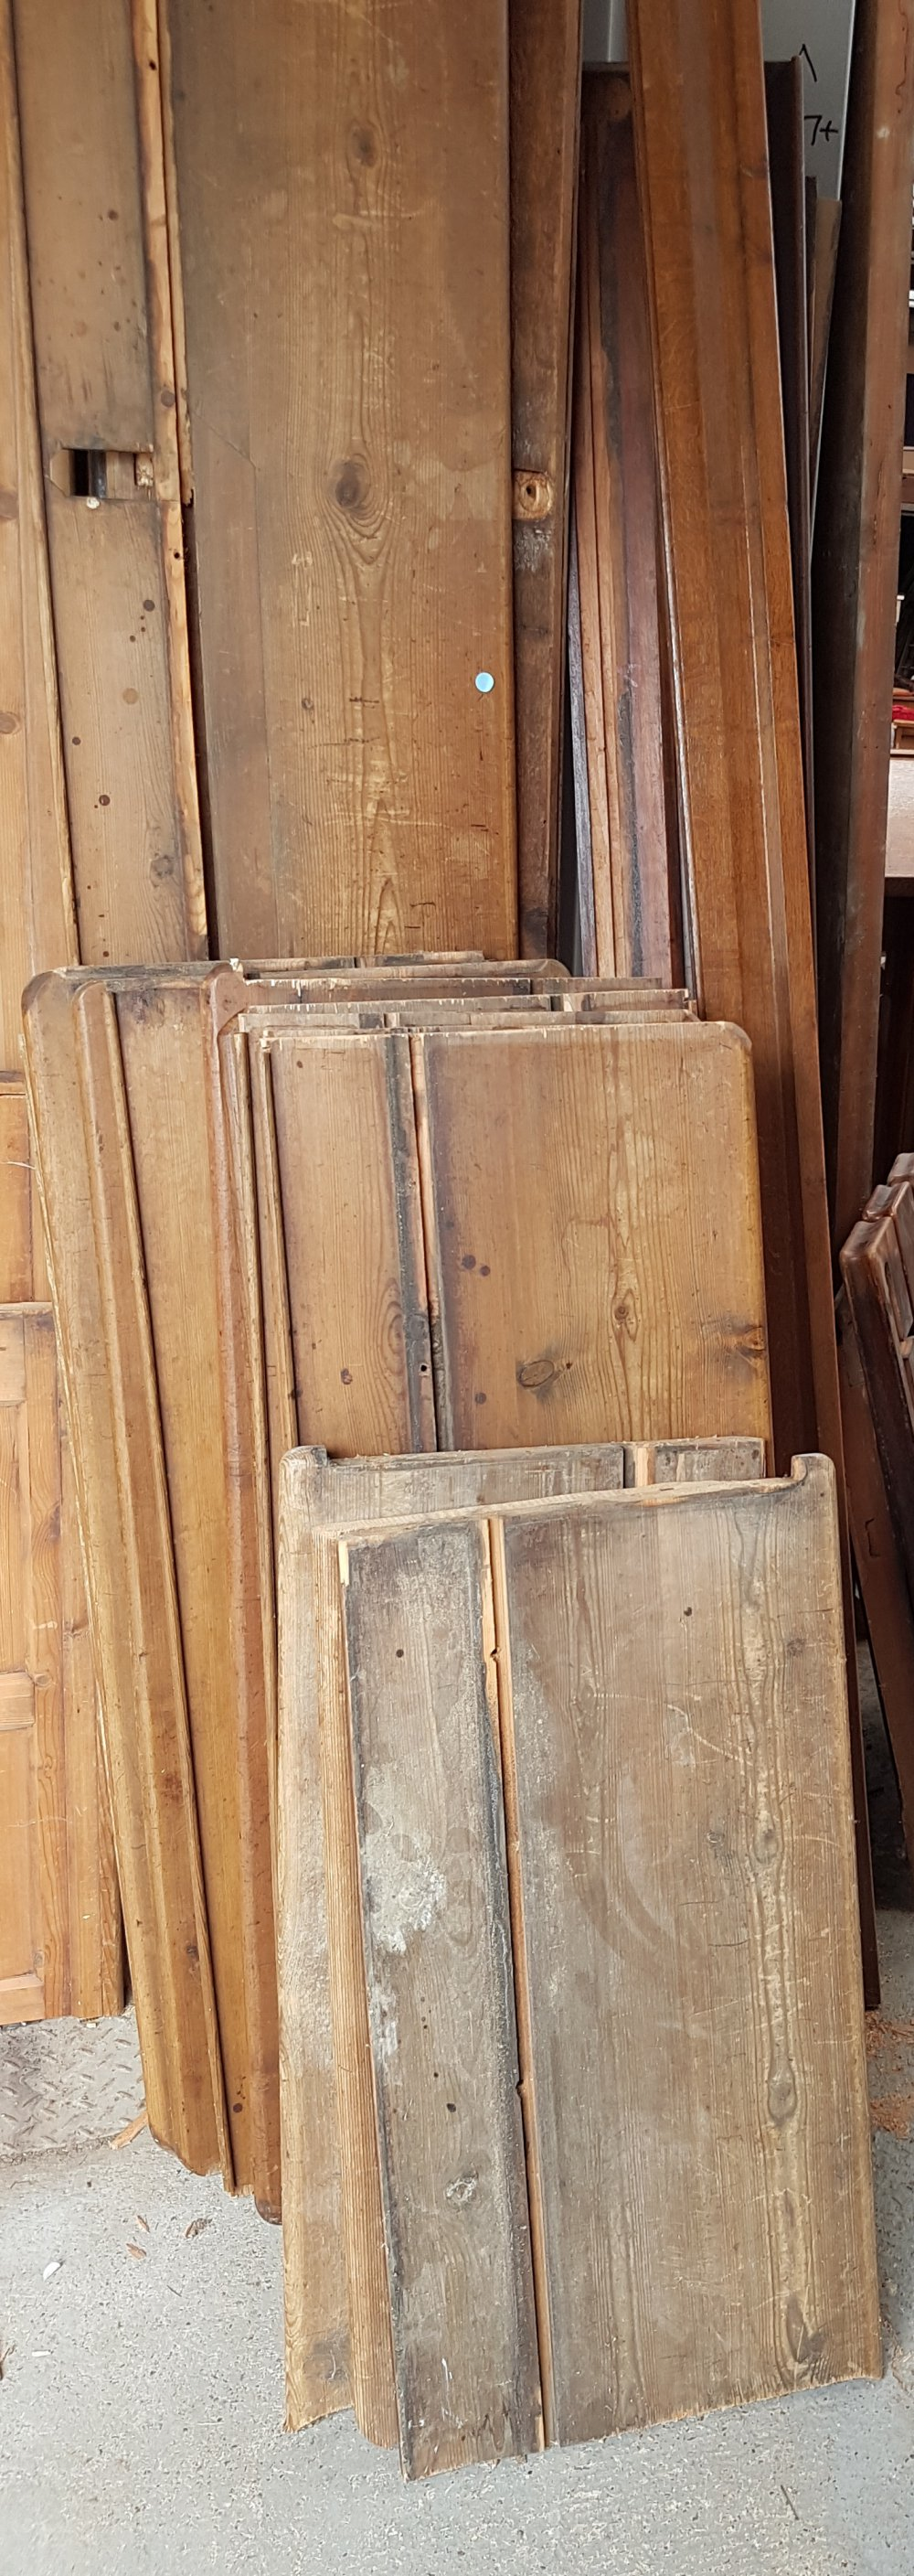 Extra Wide 1870 Seasoned Antique Pine planks pew seats - Image 3 of 3